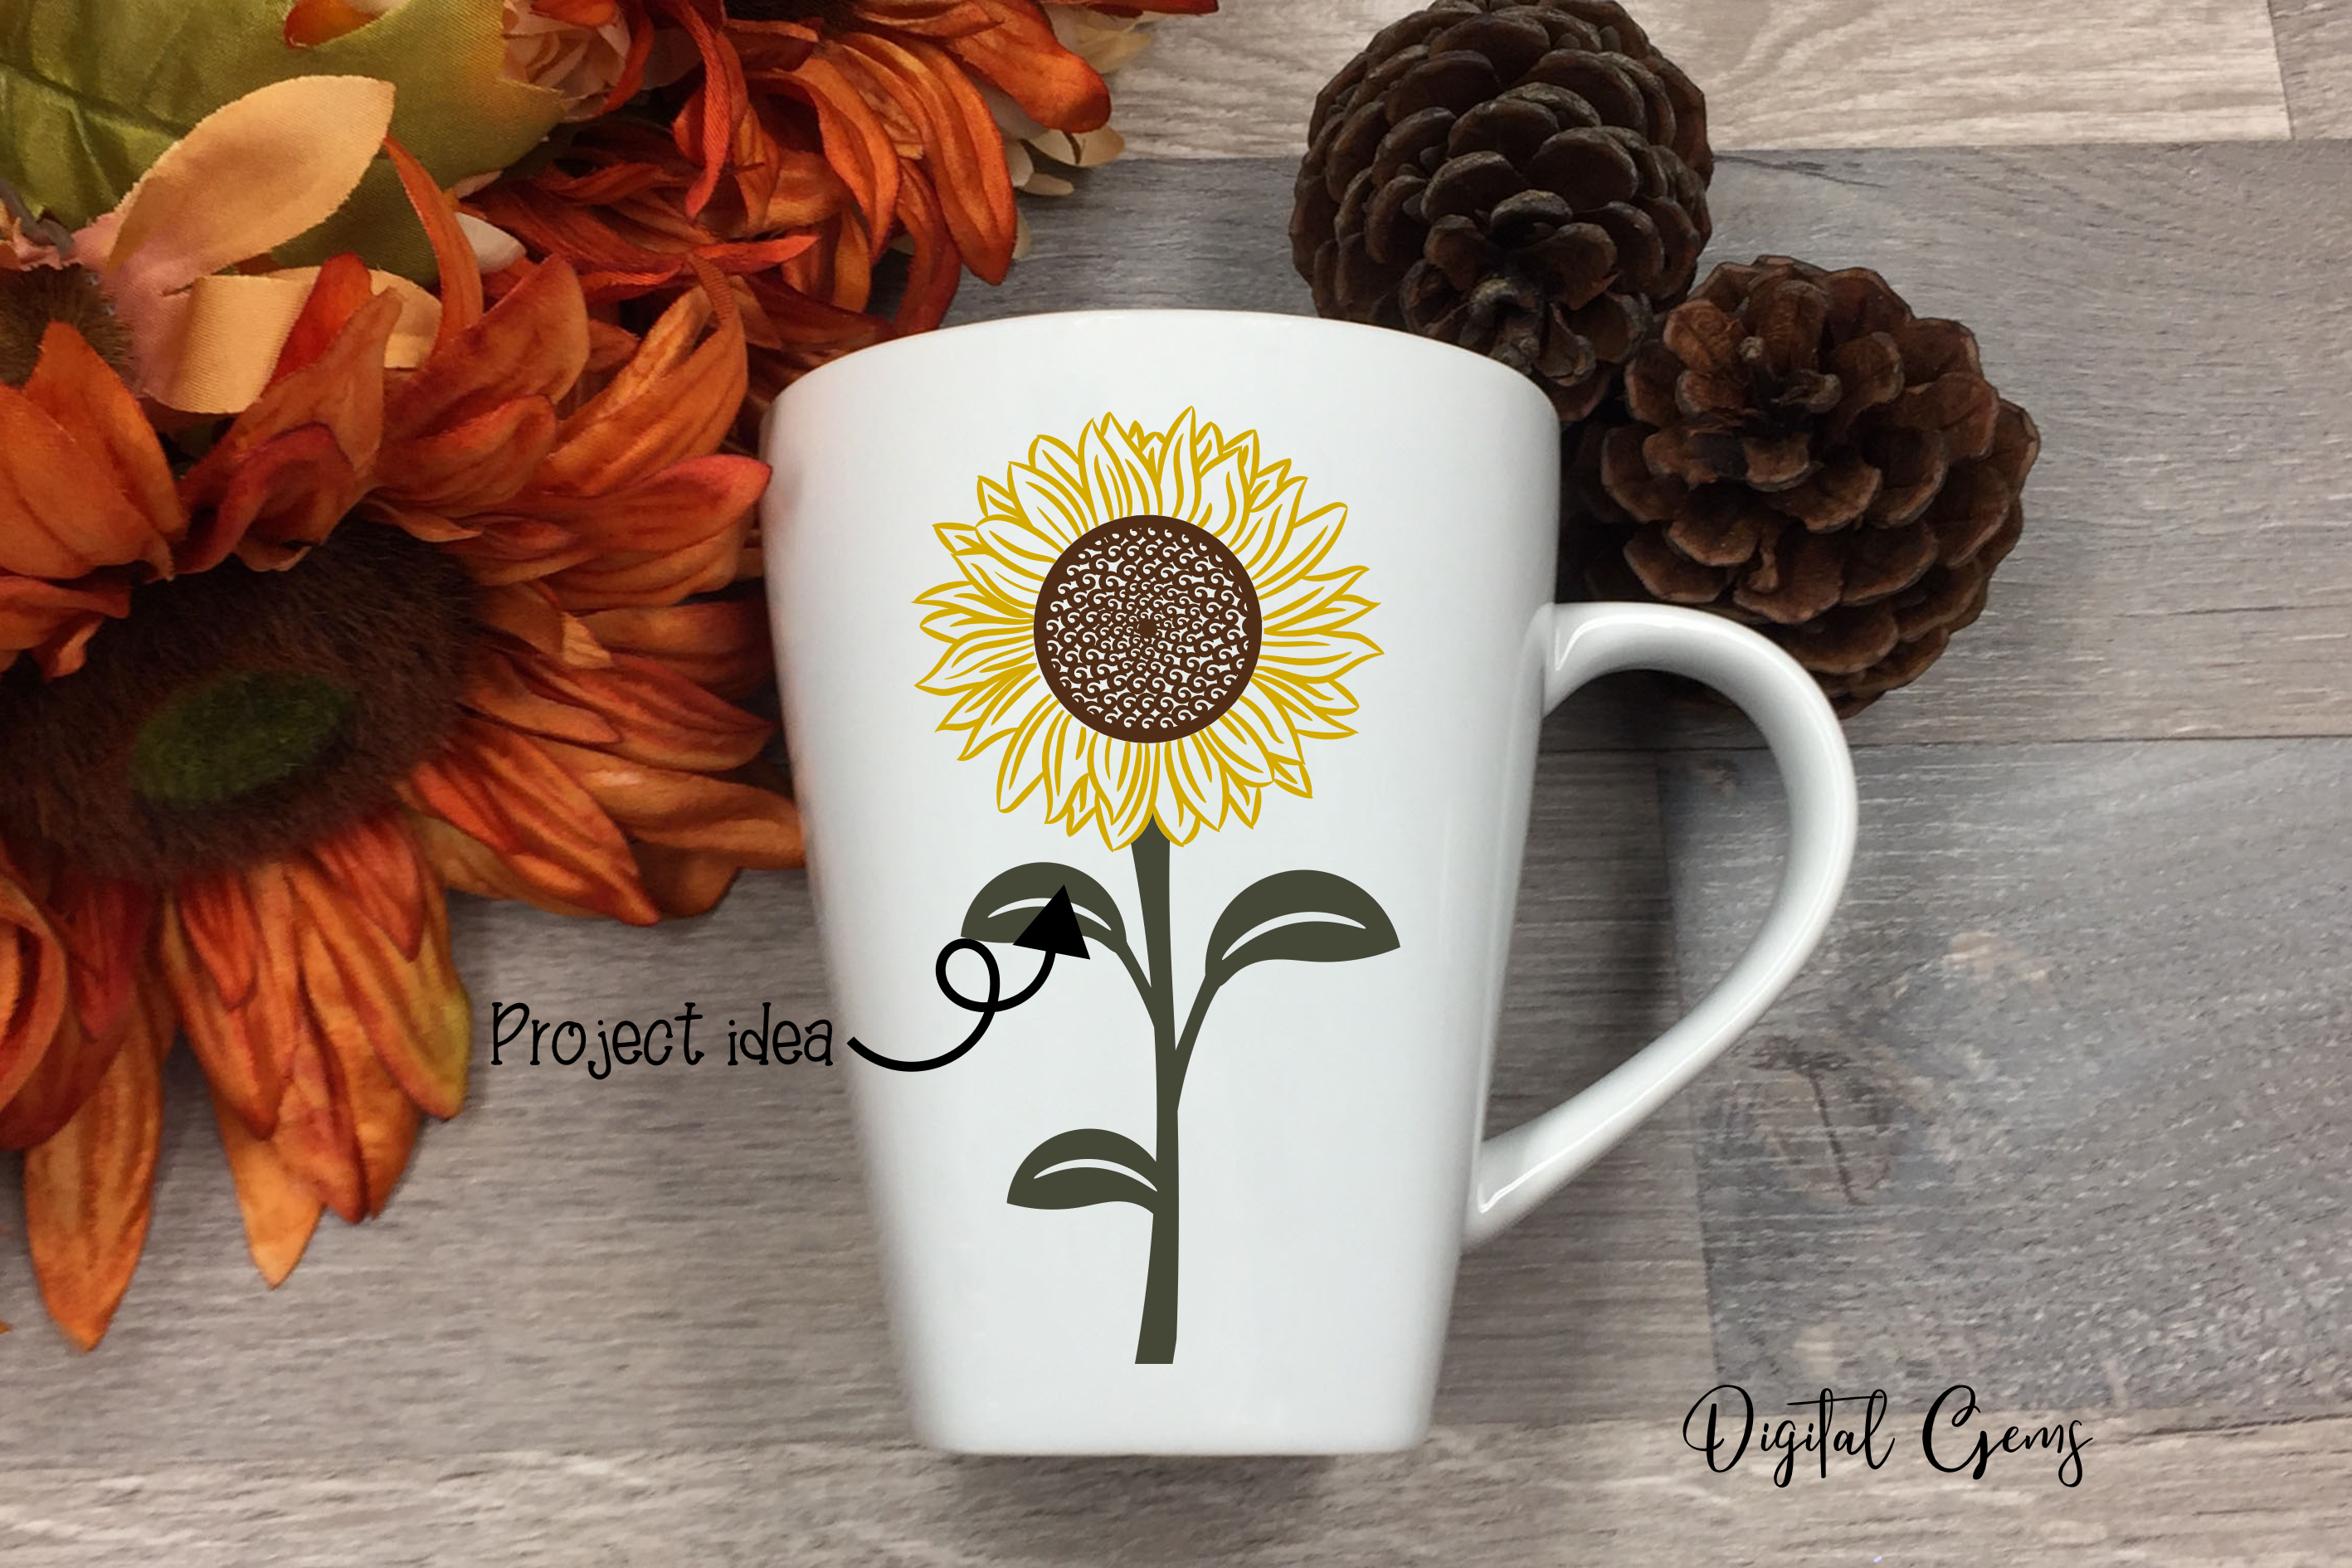 Sunflower designs SVG / PNG / EPS / DXF Files example image 4